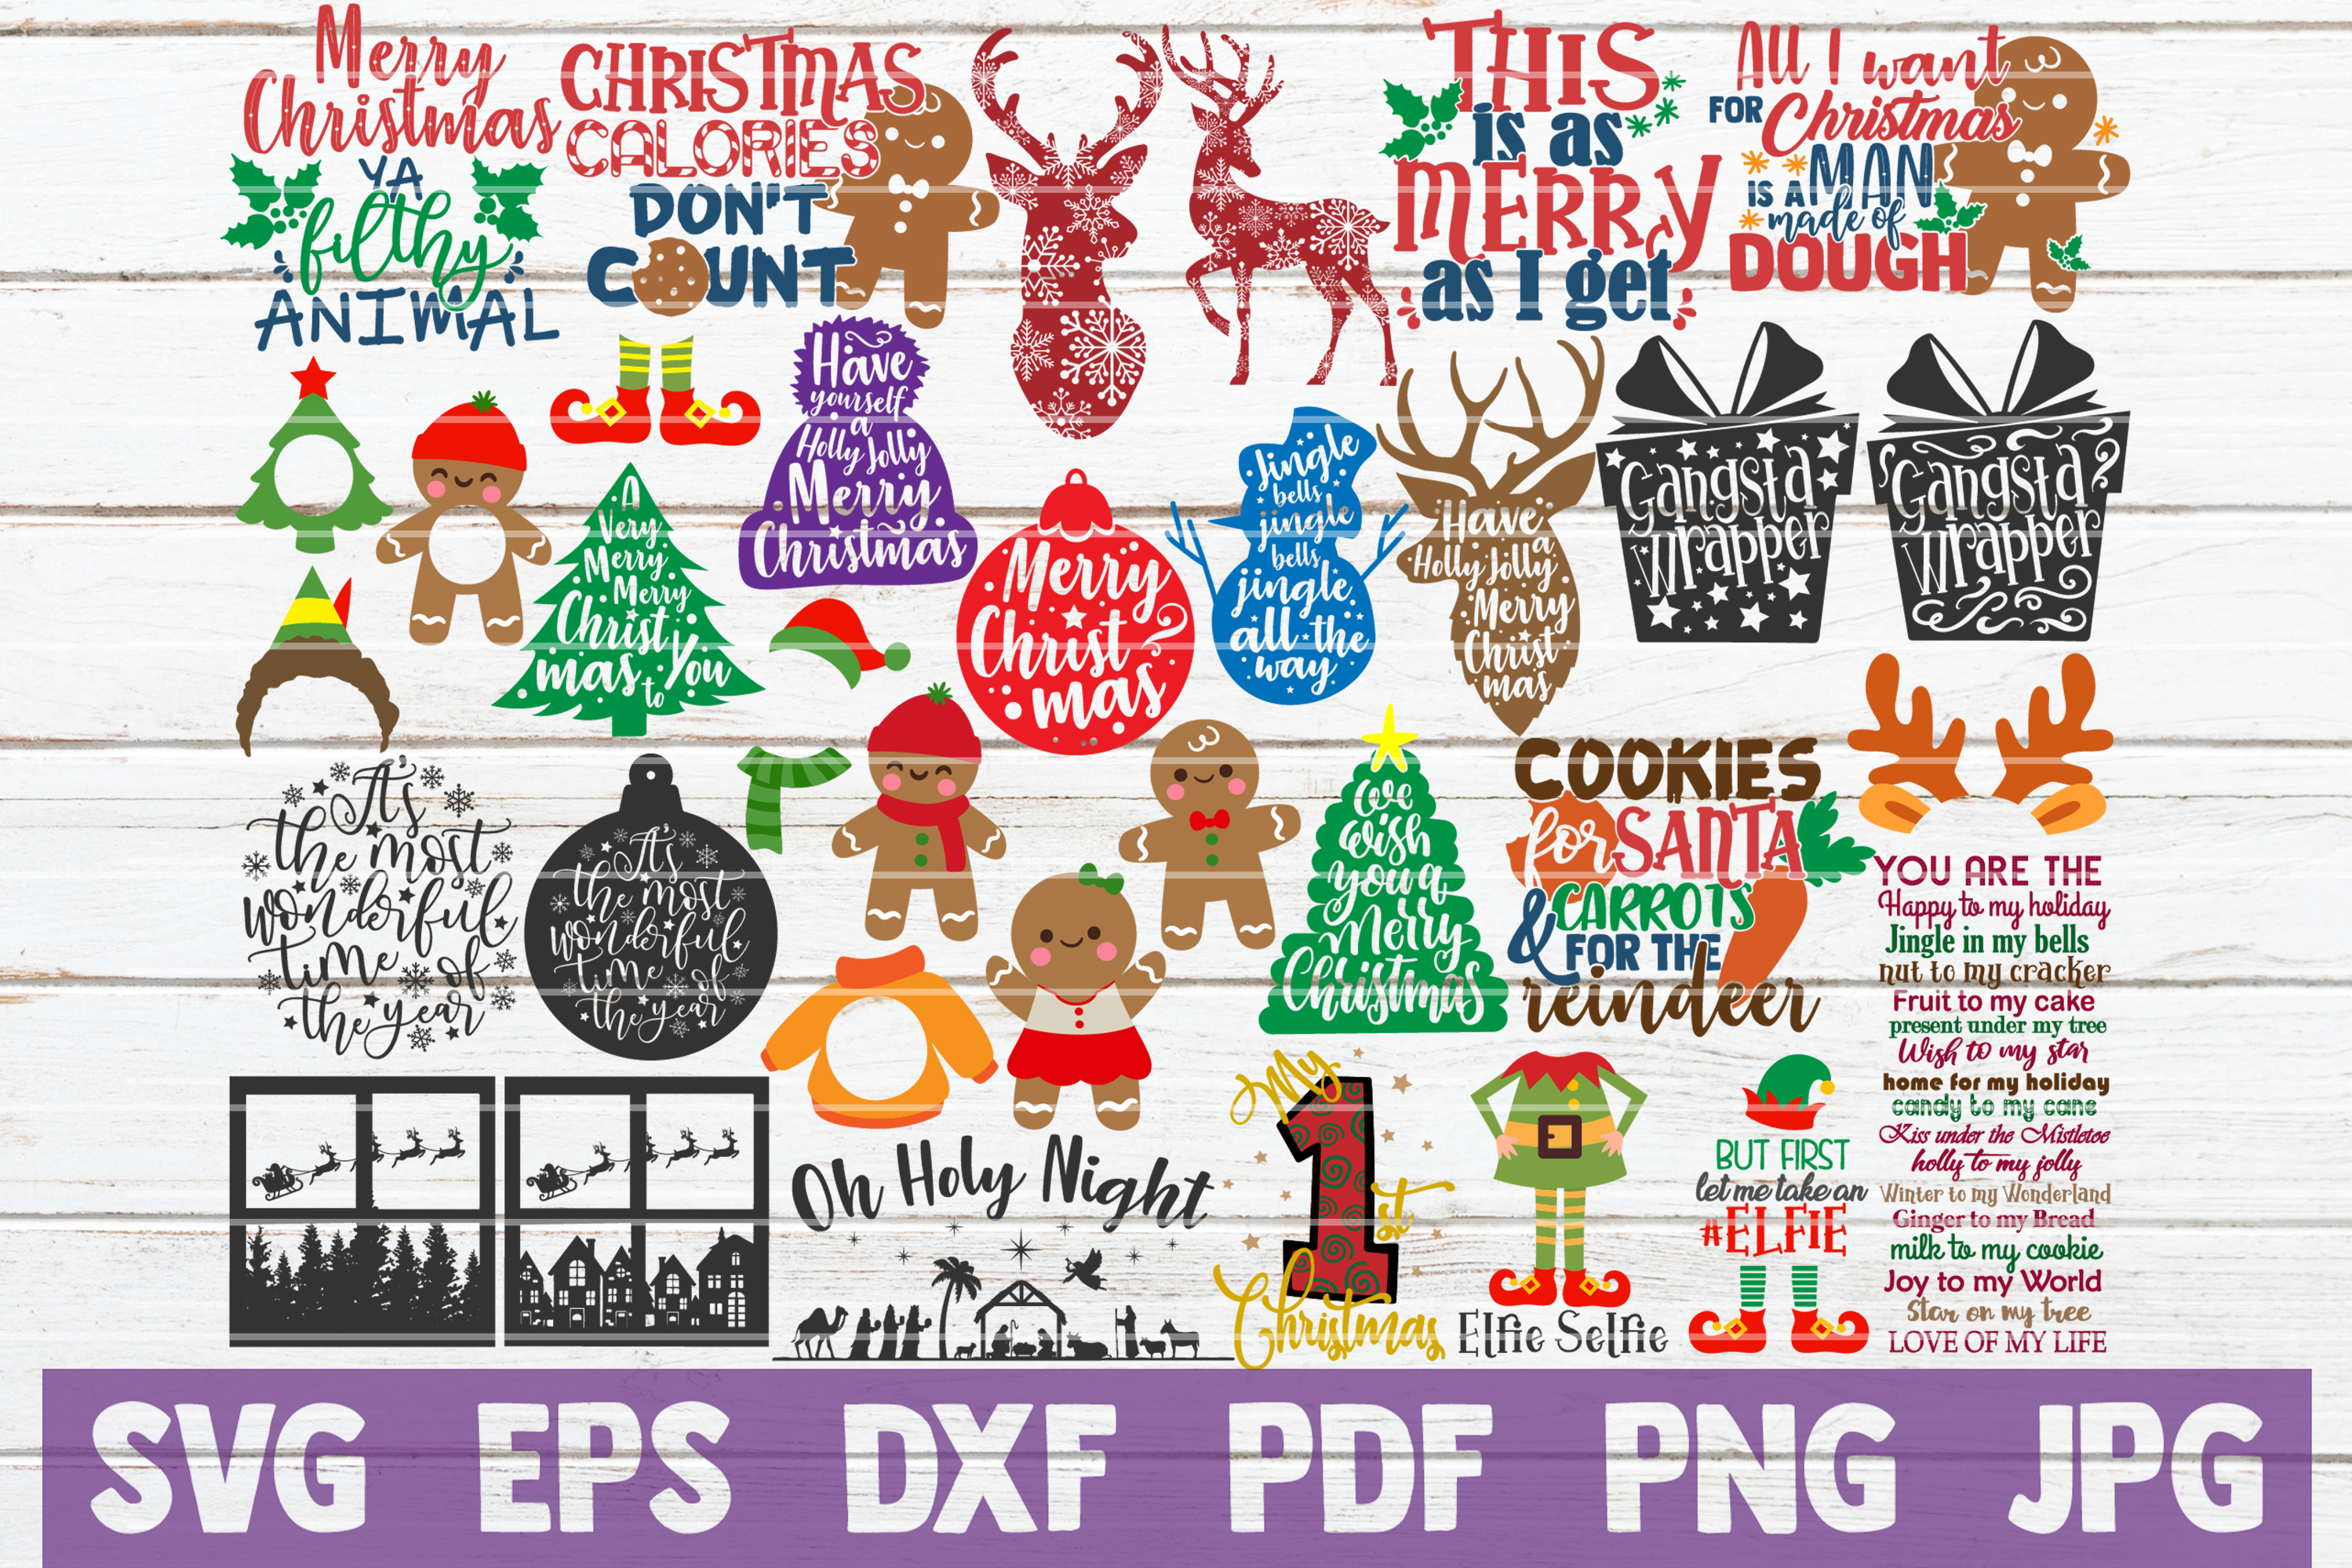 Download Free Christmas Bundle Graphic By Mintymarshmallows Creative Fabrica for Cricut Explore, Silhouette and other cutting machines.